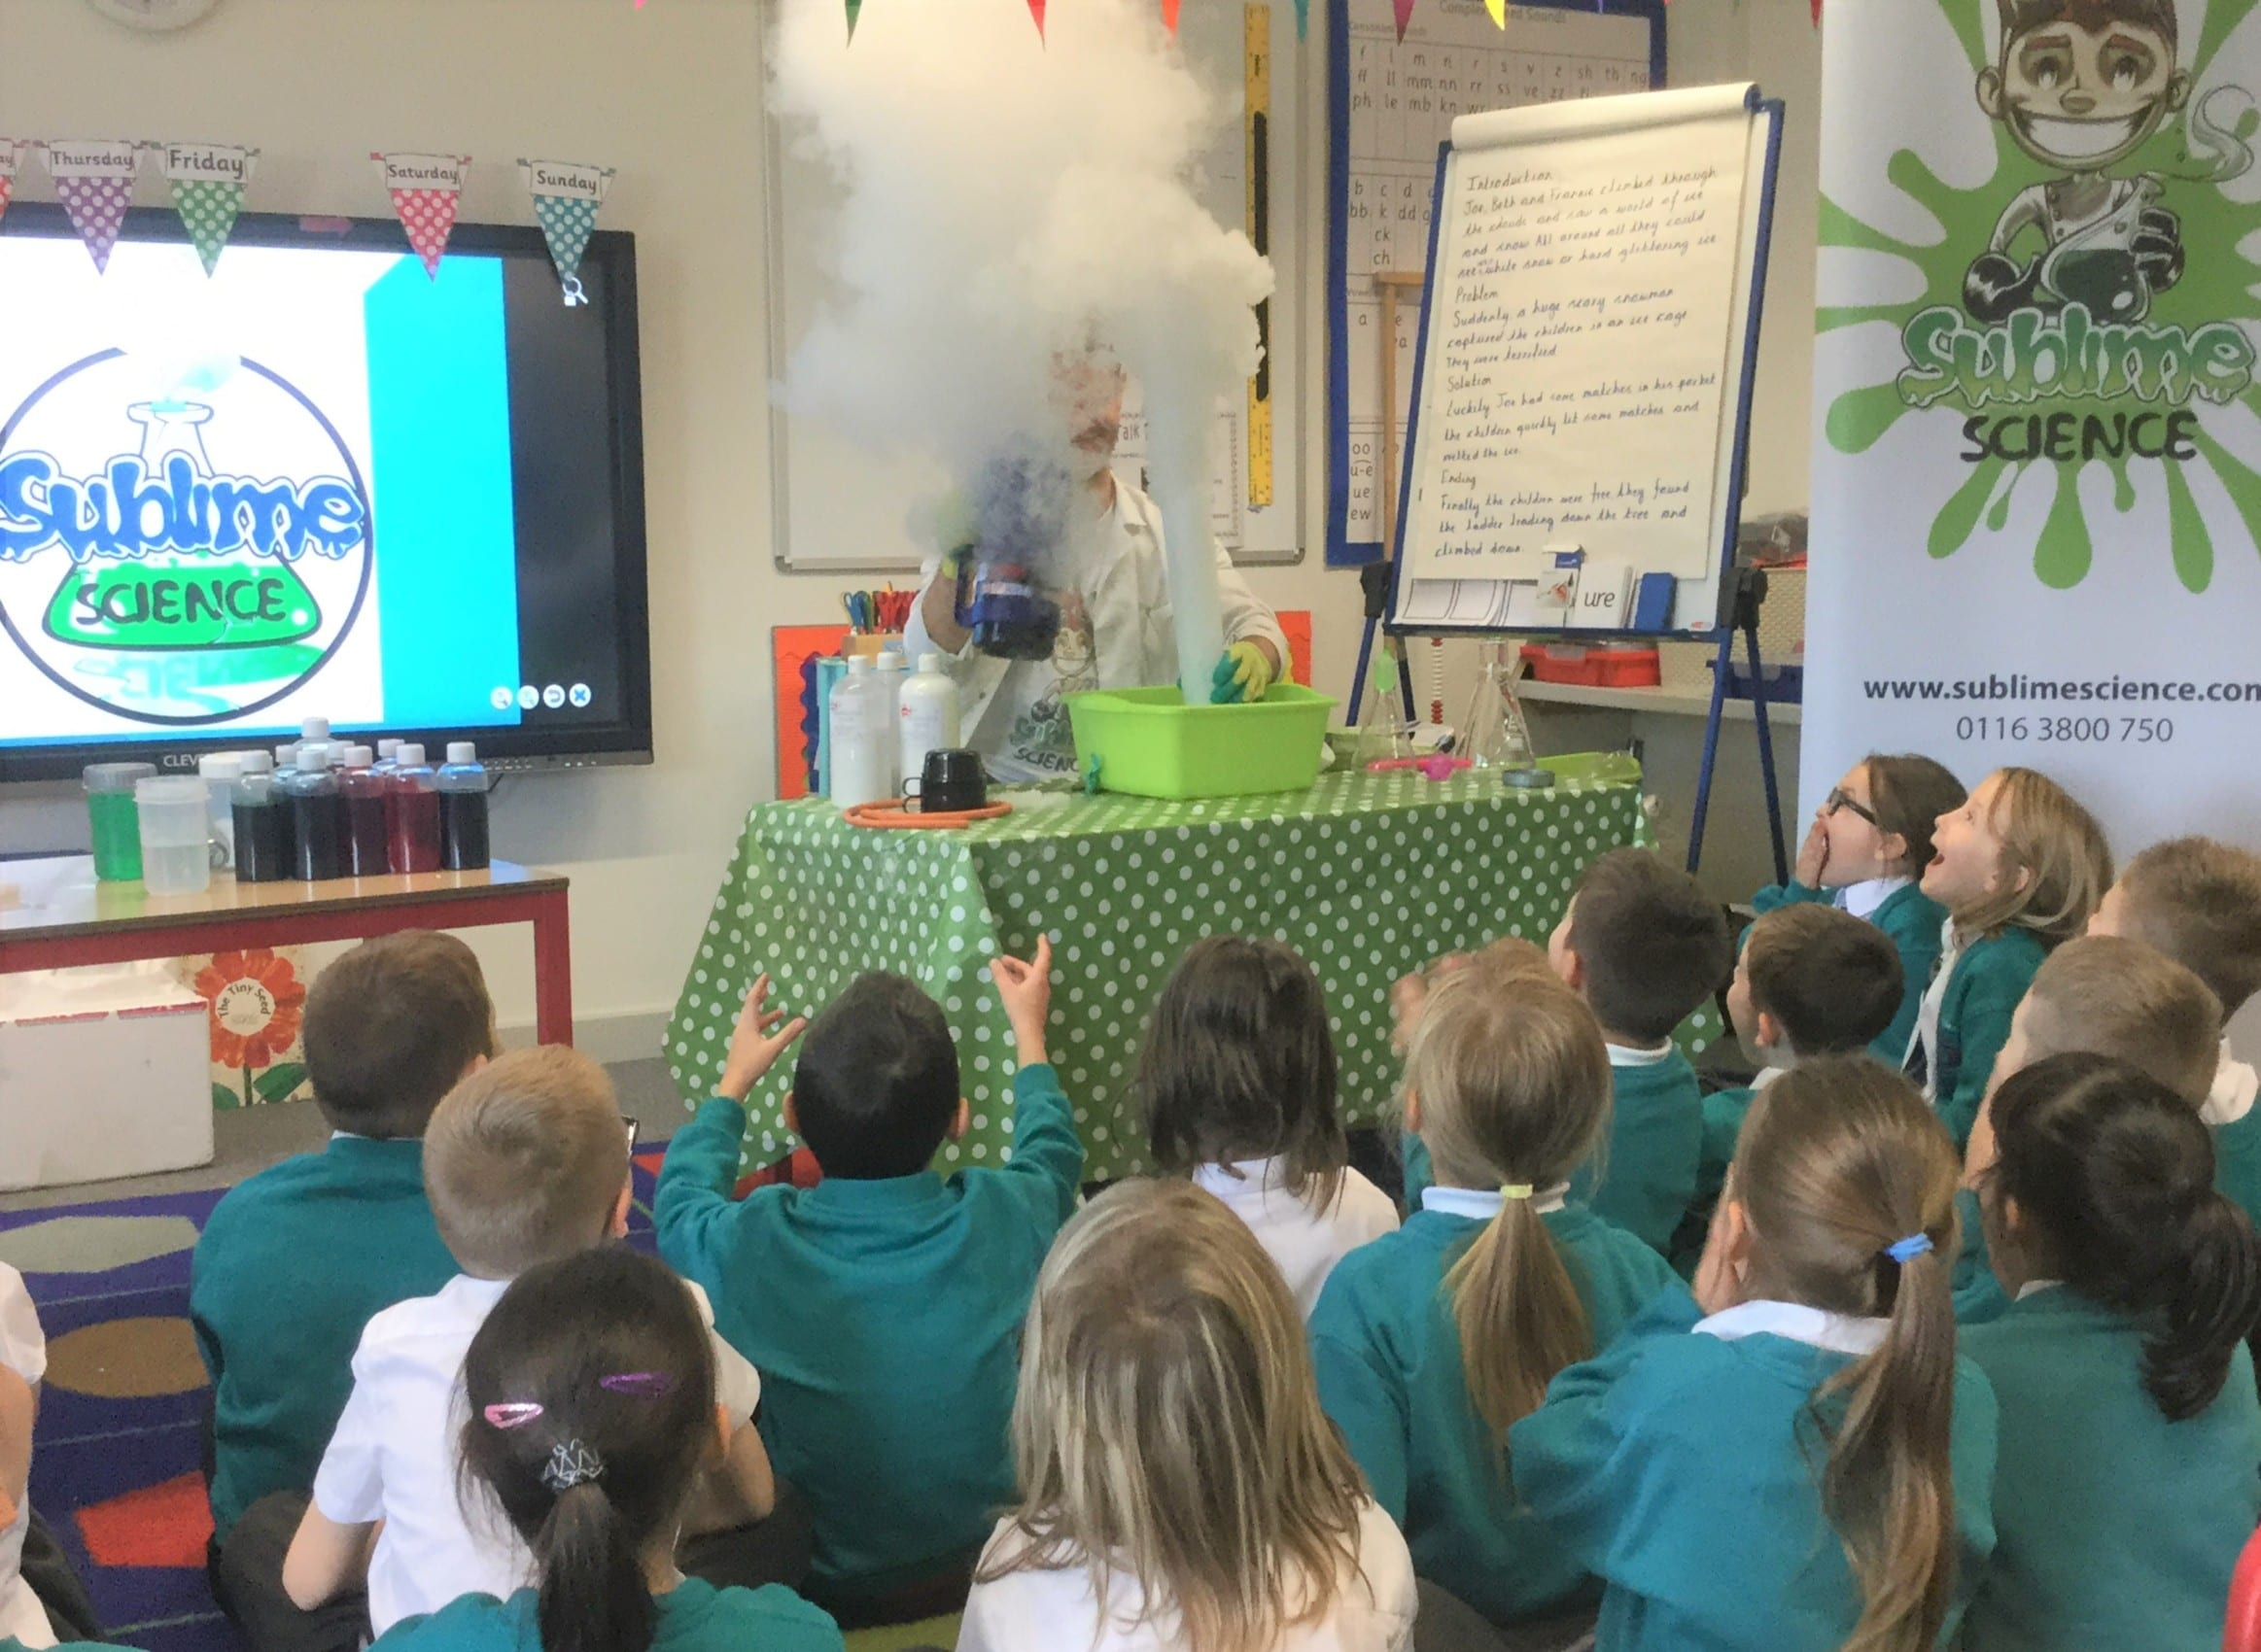 Sublime Science treat for year 2 pupils